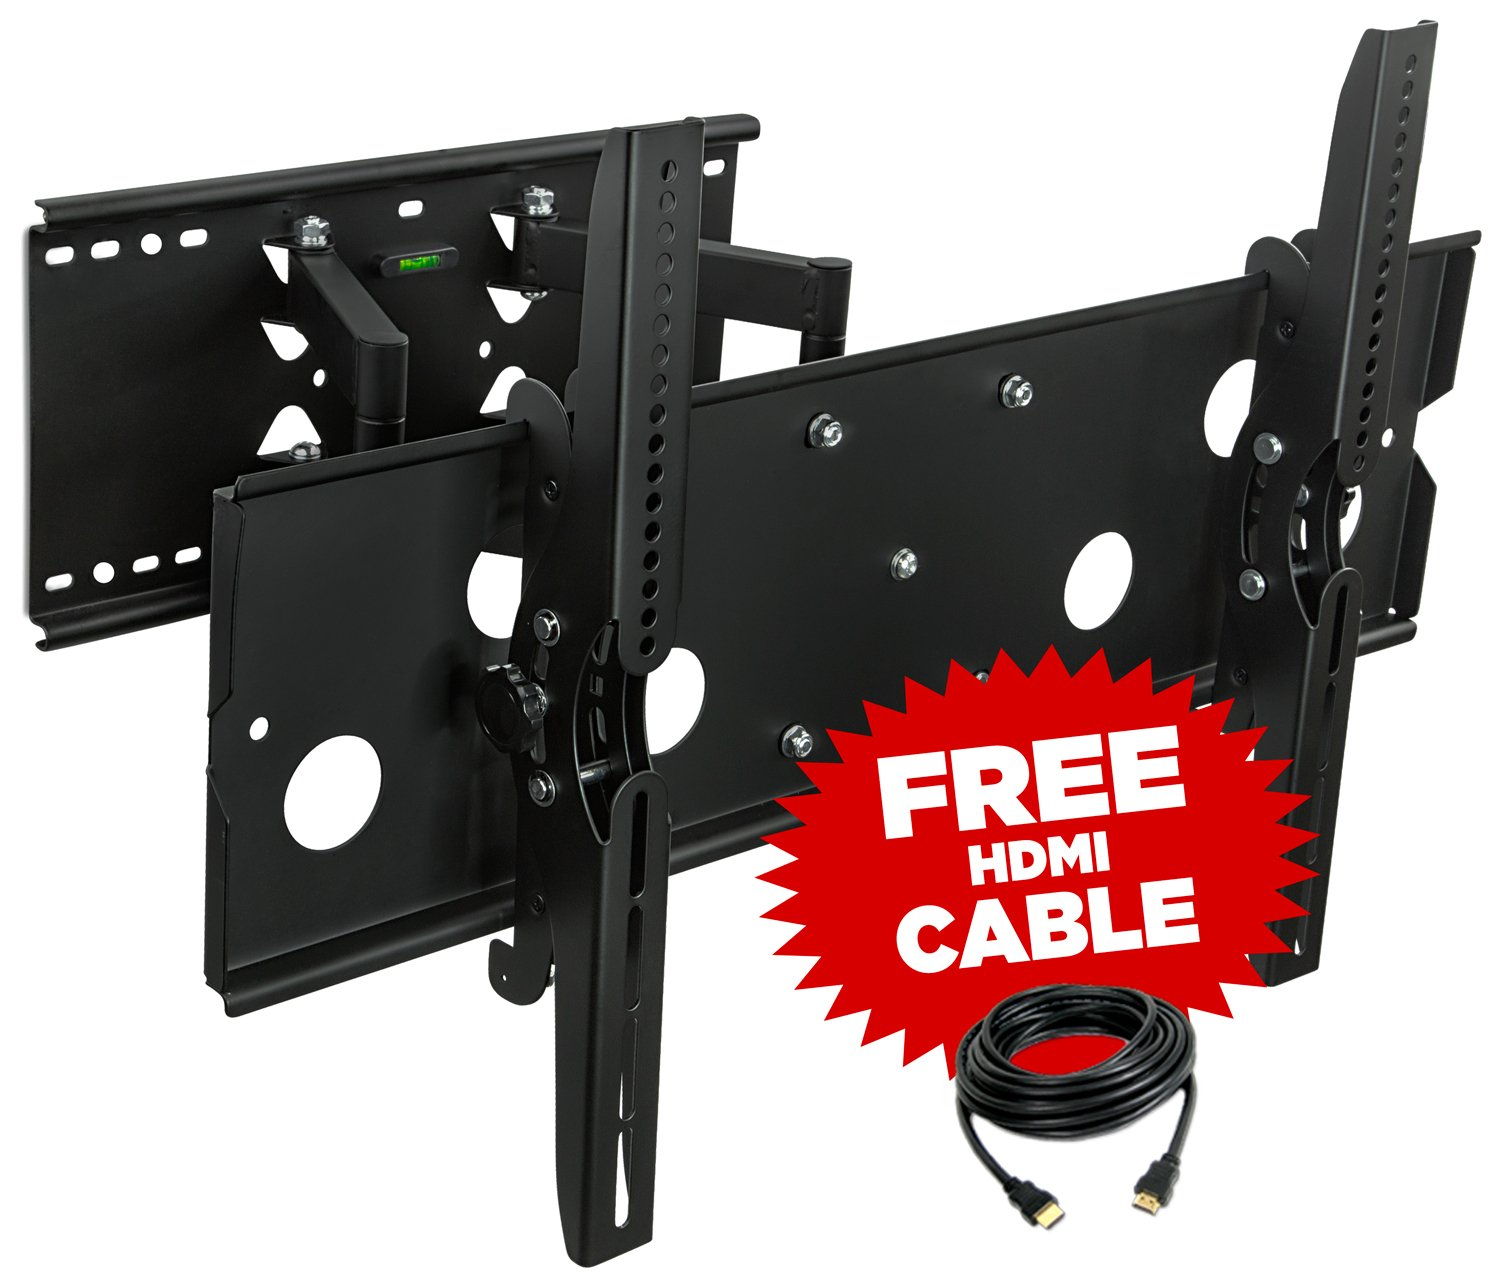 Amazon.com: Sony Bravia KDL-46NX800 LCD TV Compatible Dual-Arm Articulating Wall  Mount With Free HDMI CABLE: Home Audio & Theater - Amazon.com: Sony Bravia KDL-46NX800 LCD TV Compatible Dual-Arm